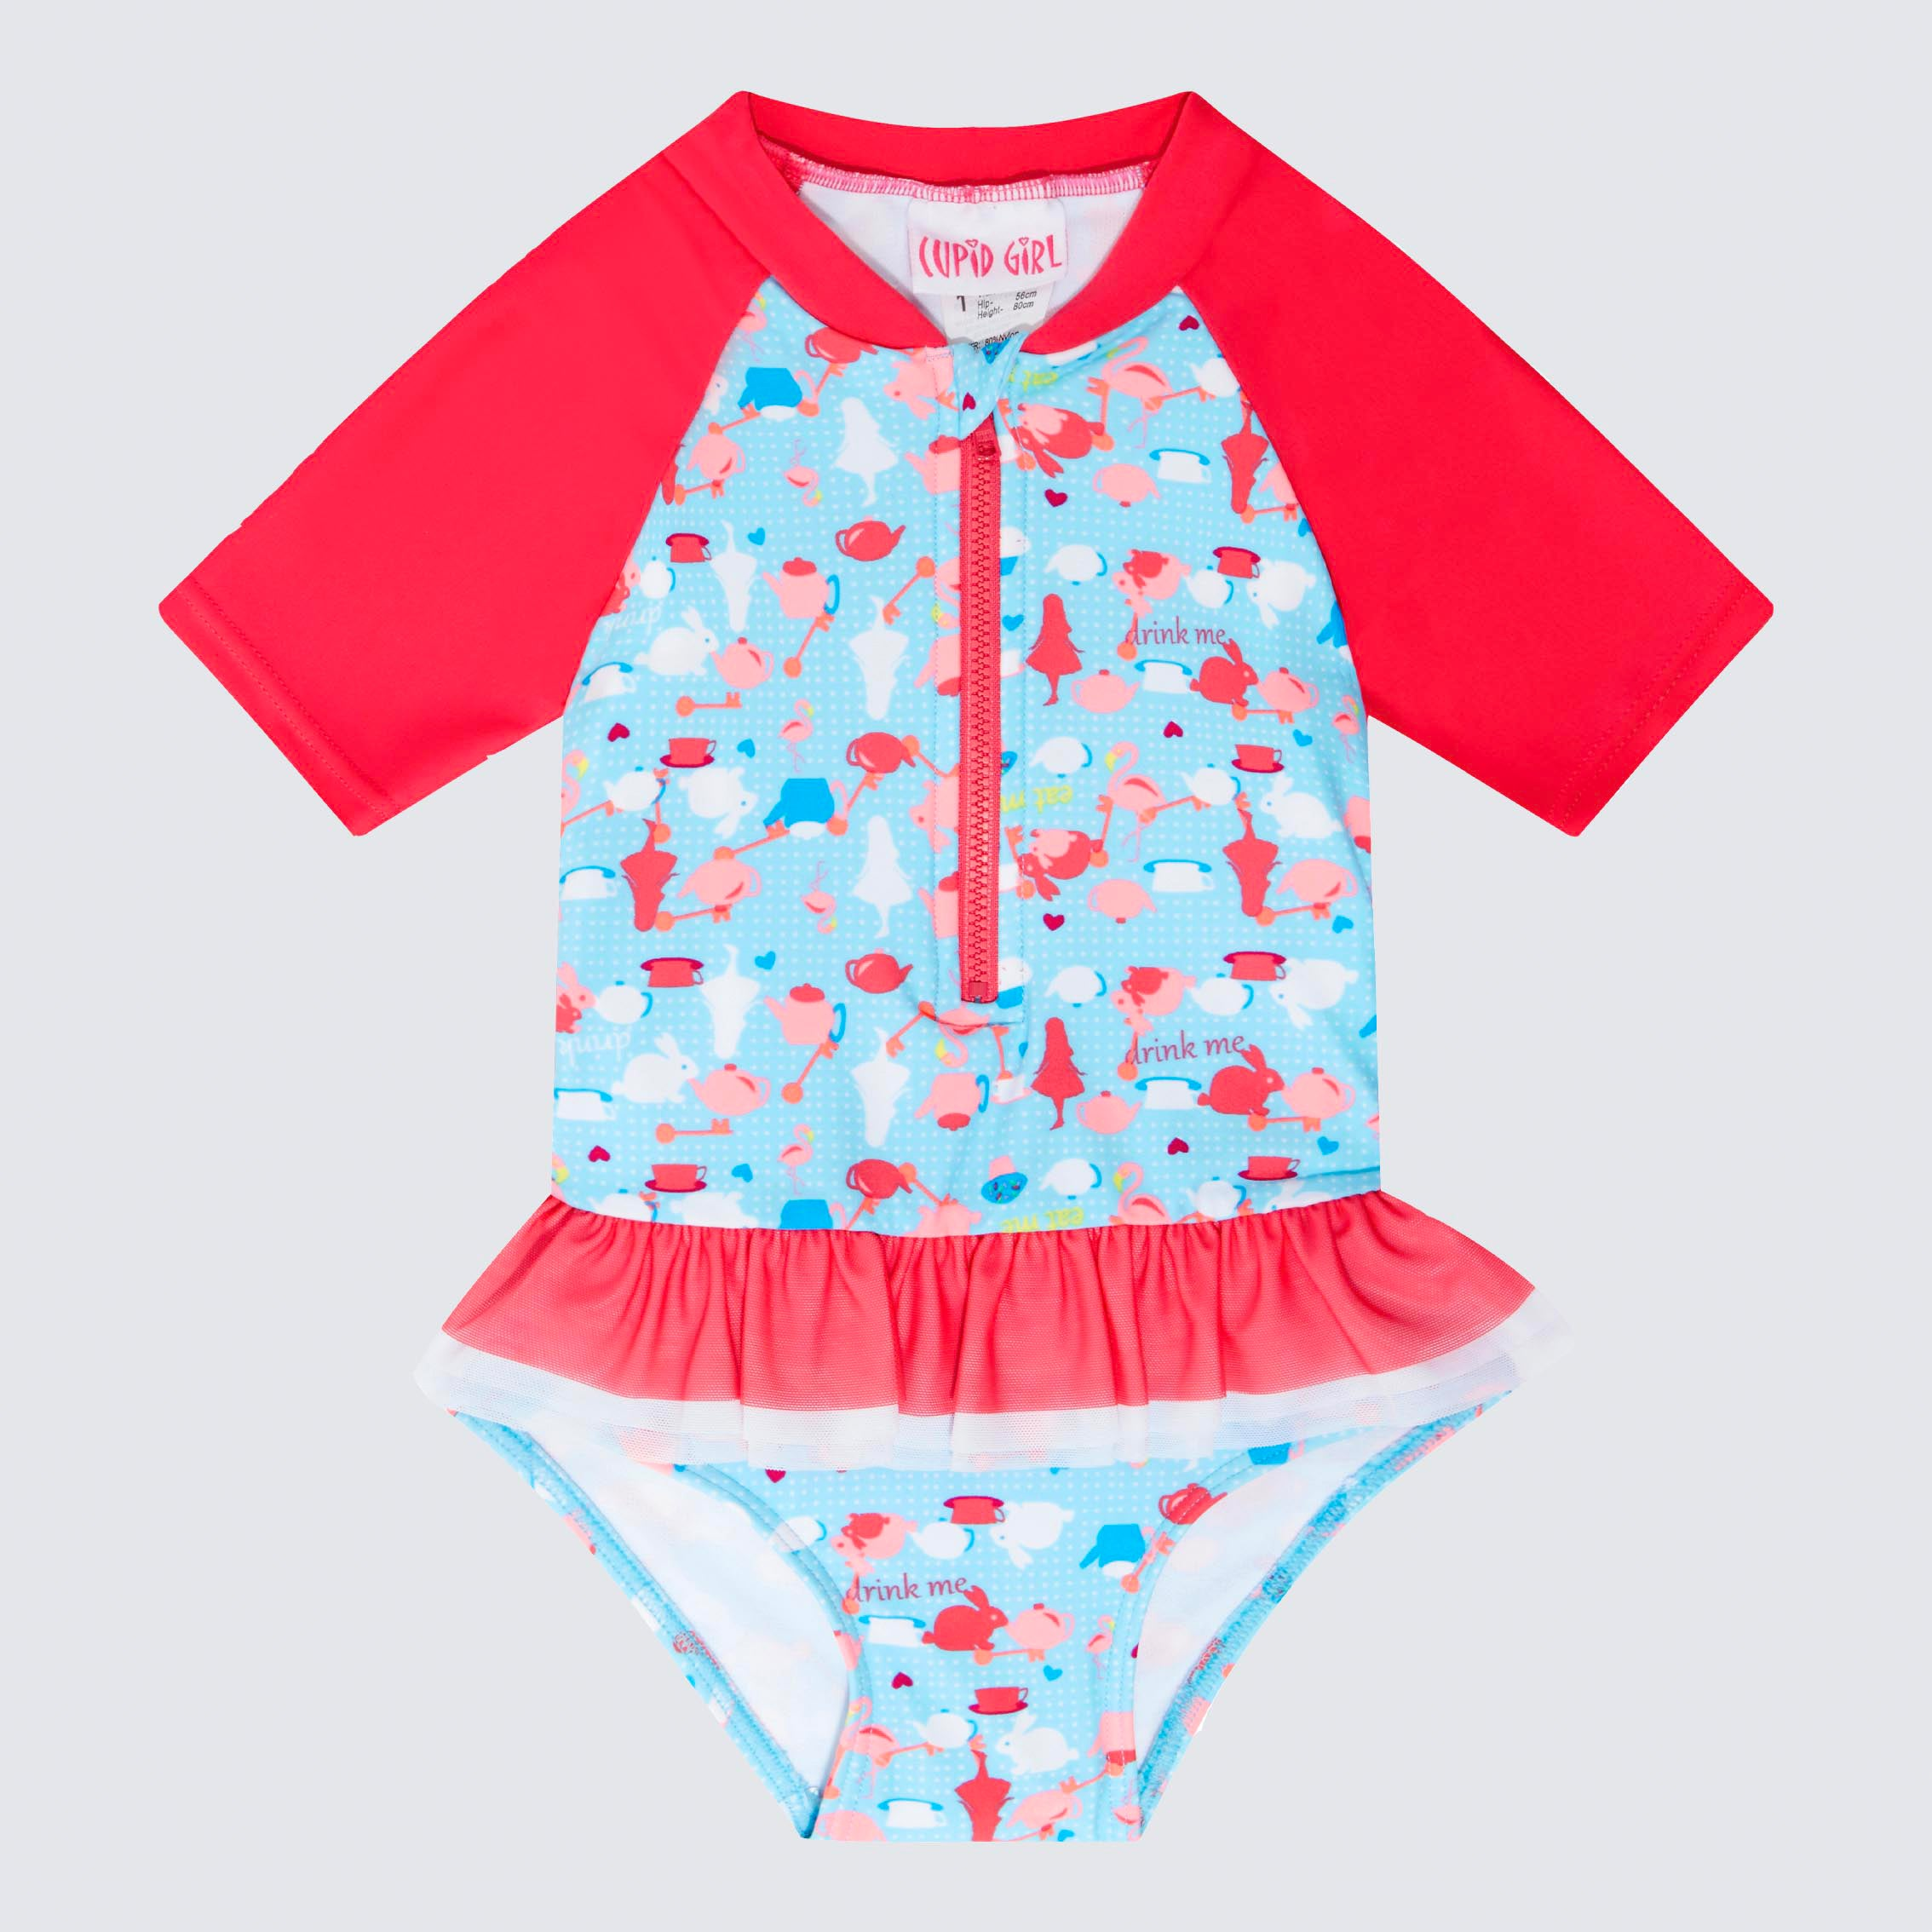 Cupid Girl Tea Party Tutu Zoot Suit